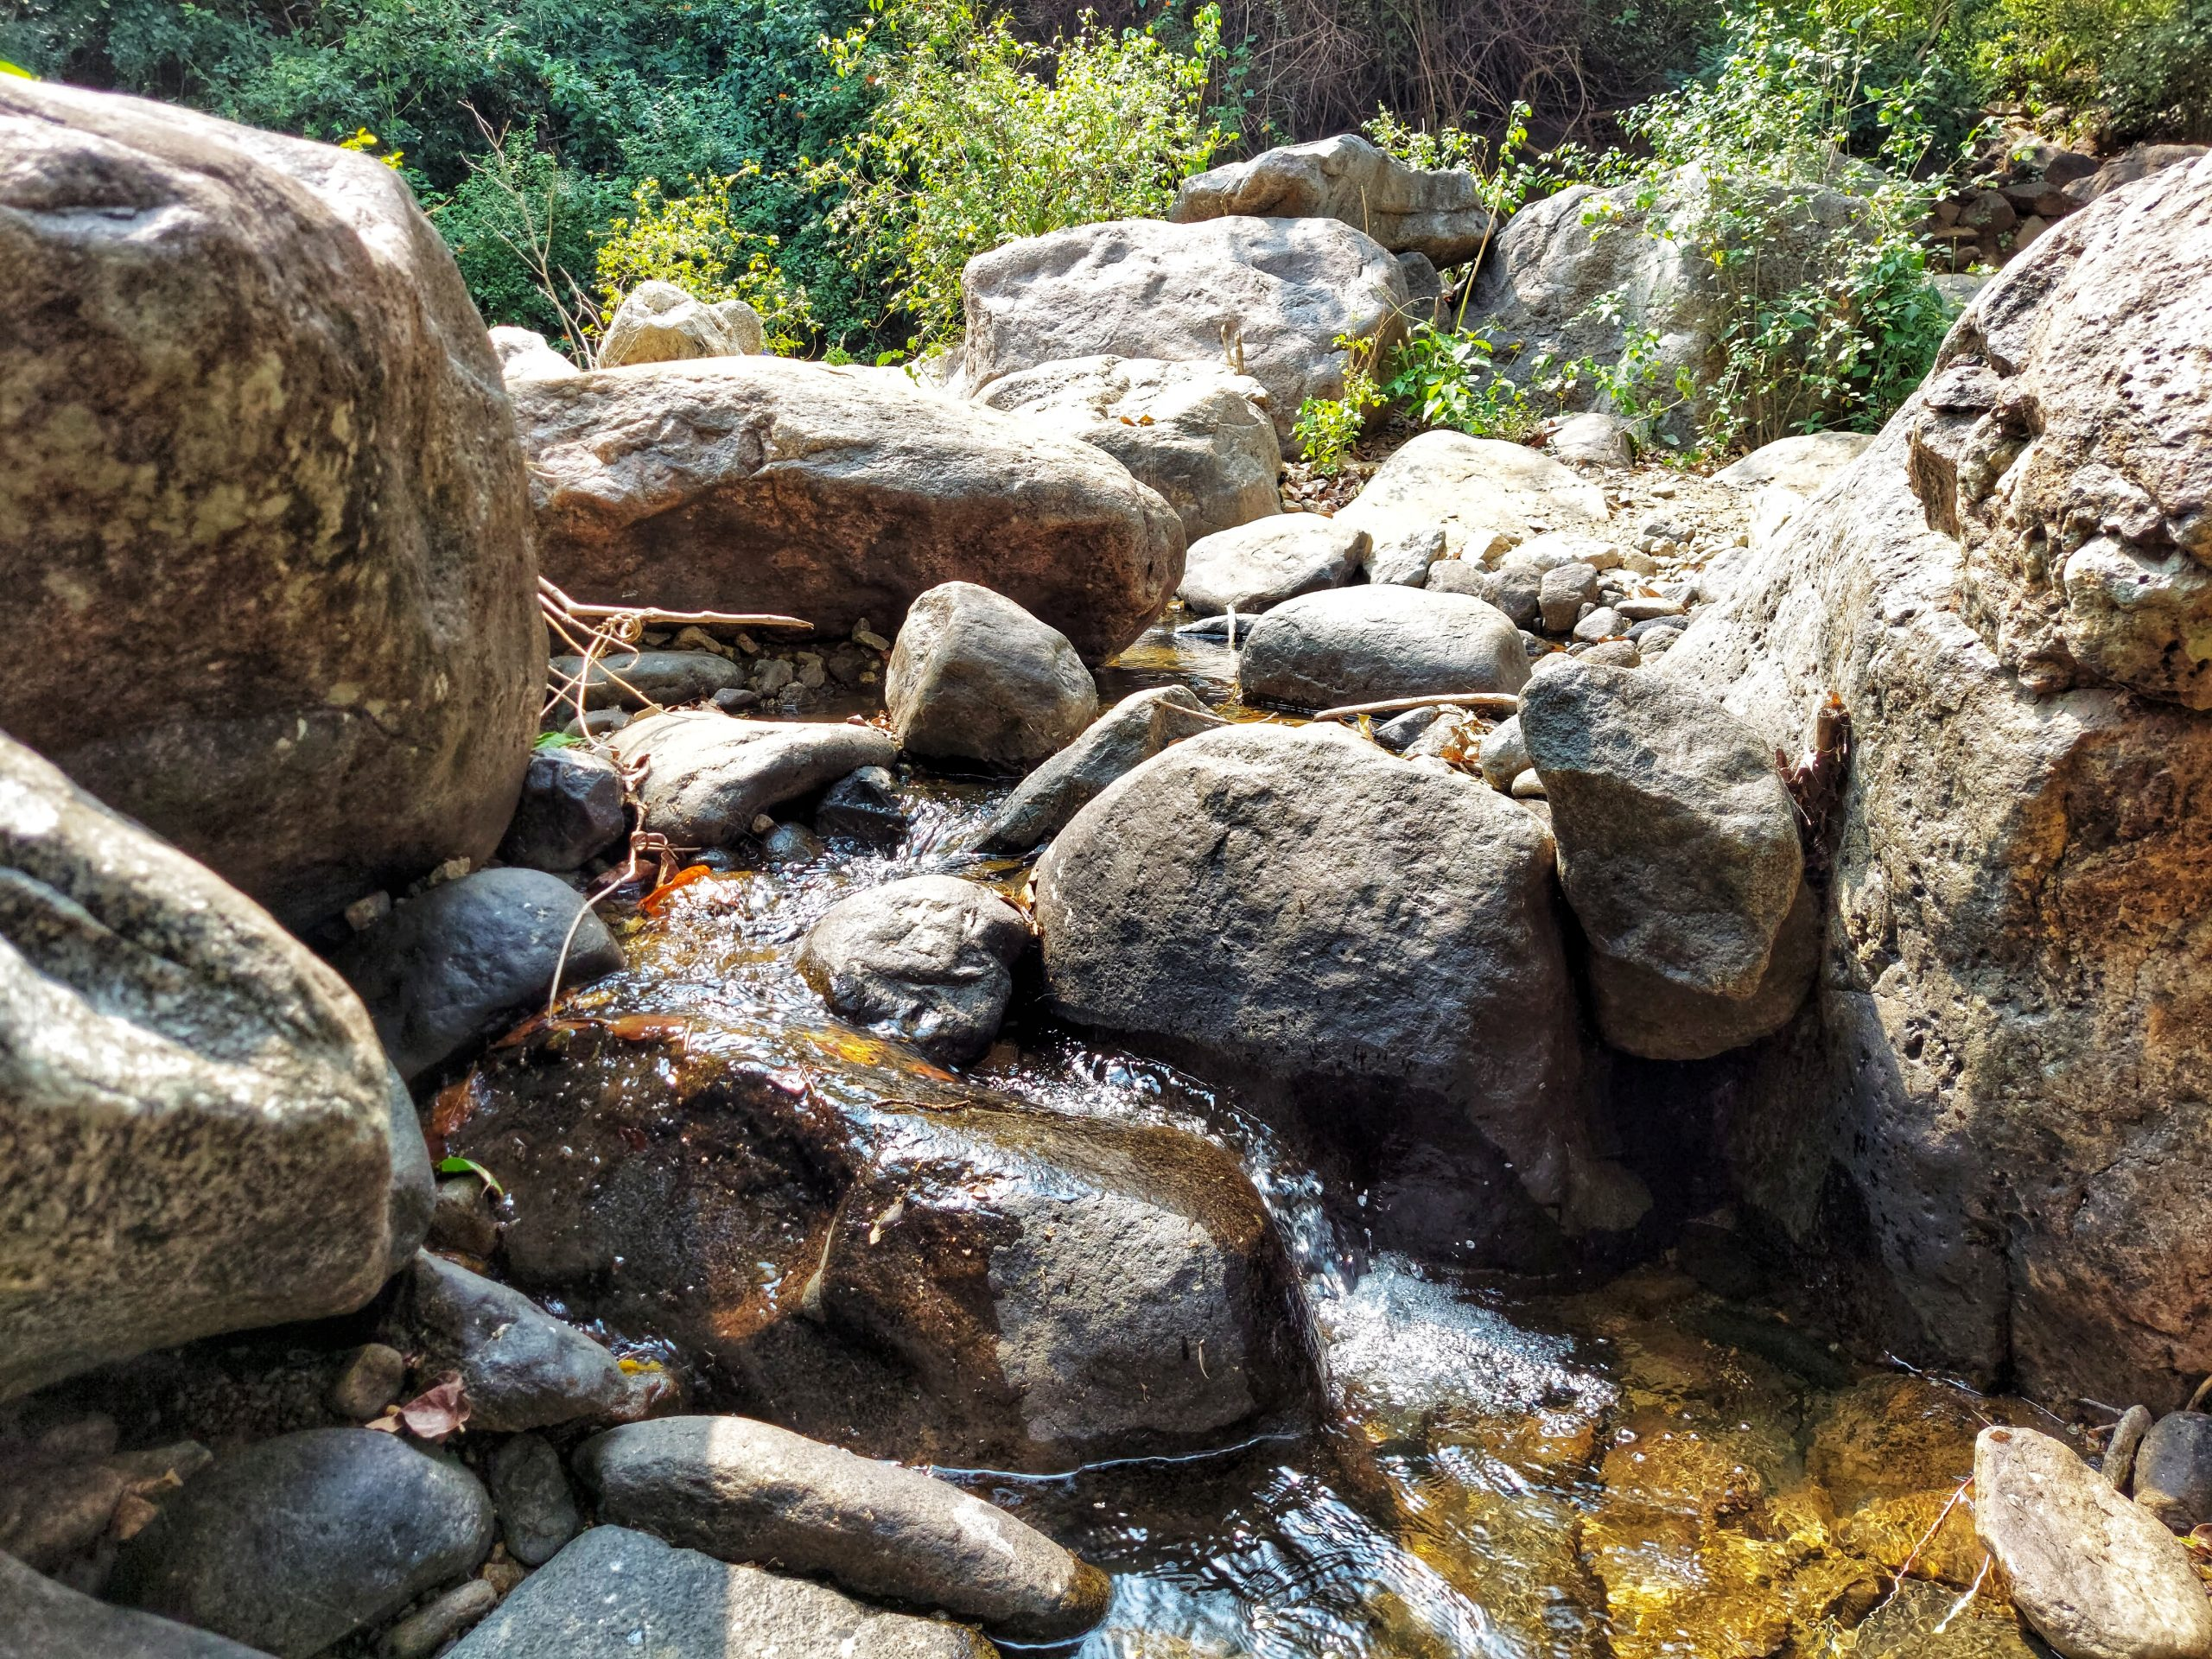 Water flowing through big stones